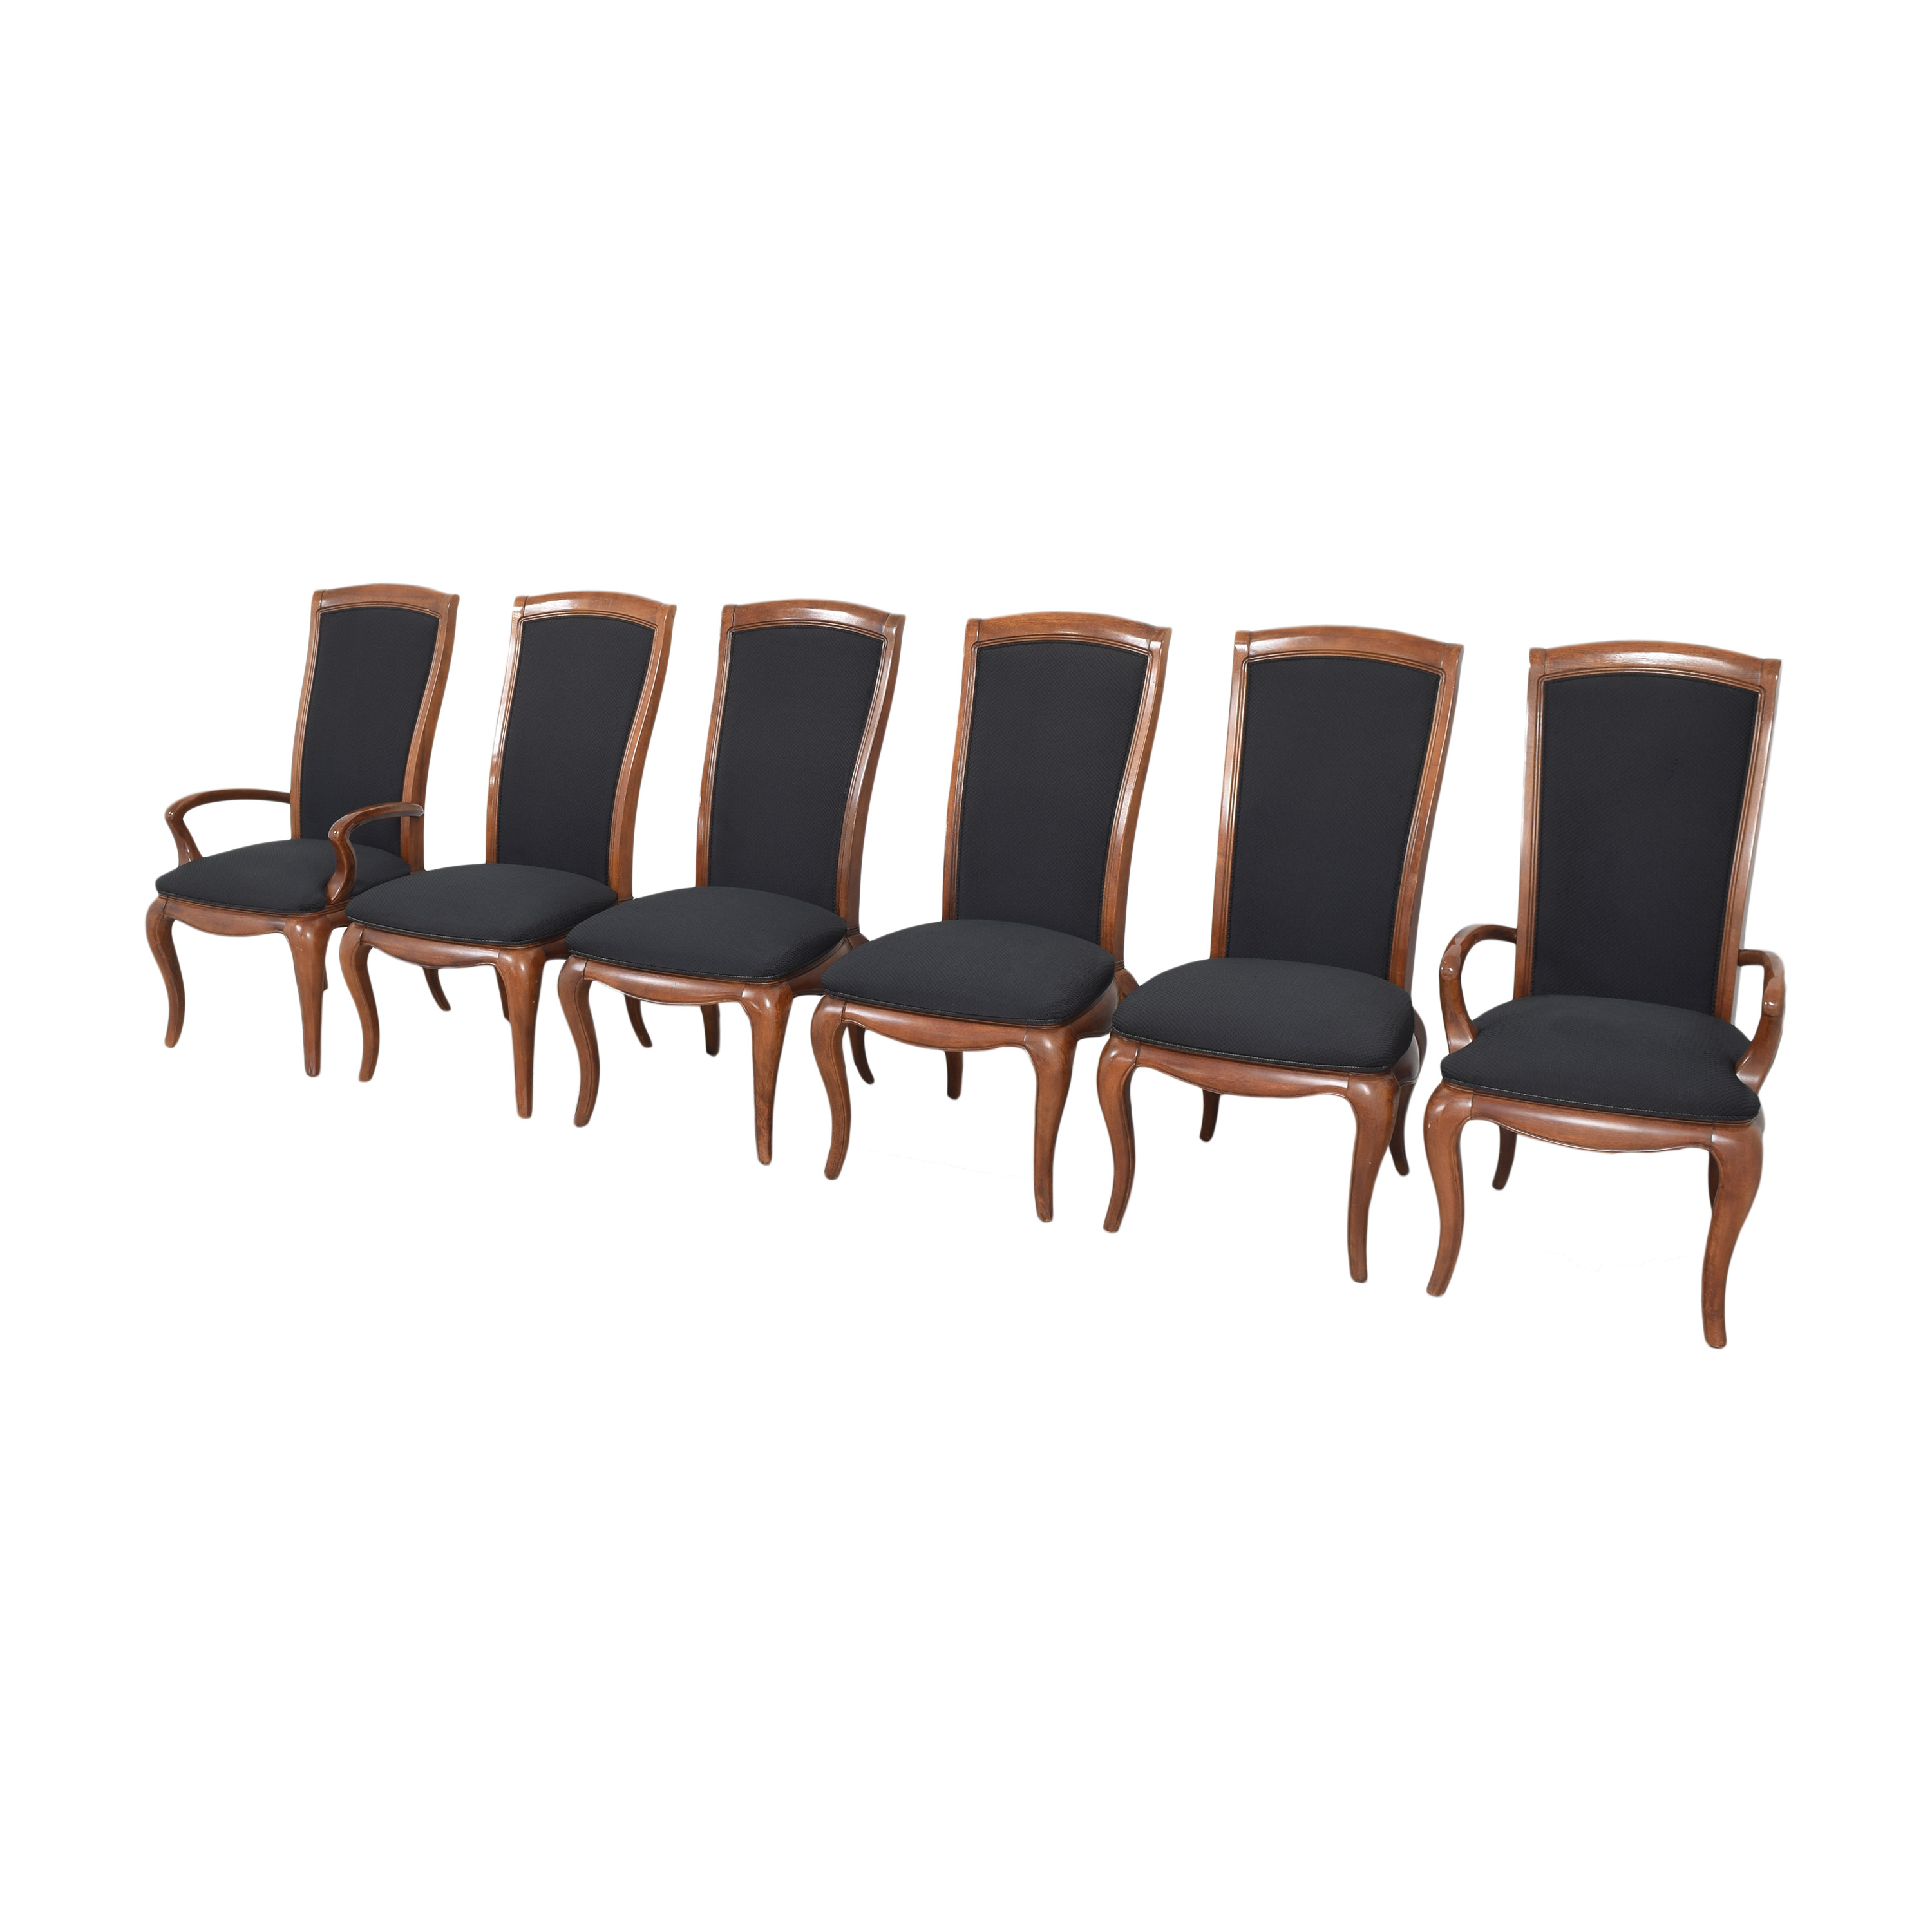 American Drew Upholstered Dining Chairs / Dining Chairs